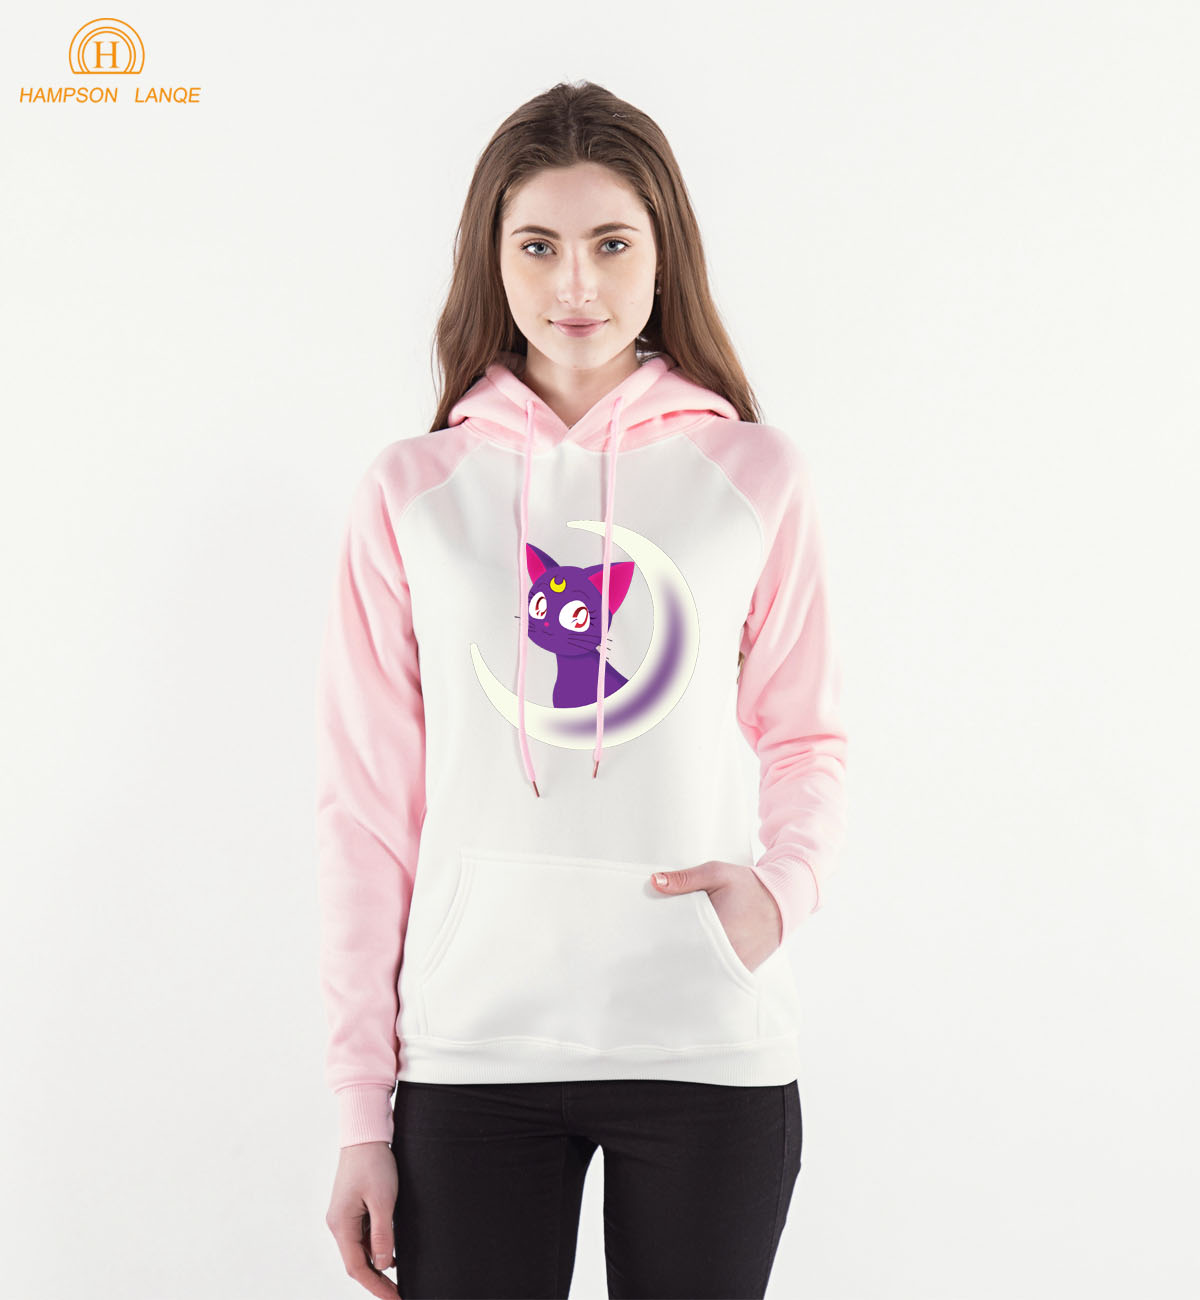 Kawaii Sailor Moon Anime Hoodie Pink Warm Fleece Raglan Hoodies 2019 Spring Autumn Kawaii Sweatshirts Women Kpop Raglan Hoodie